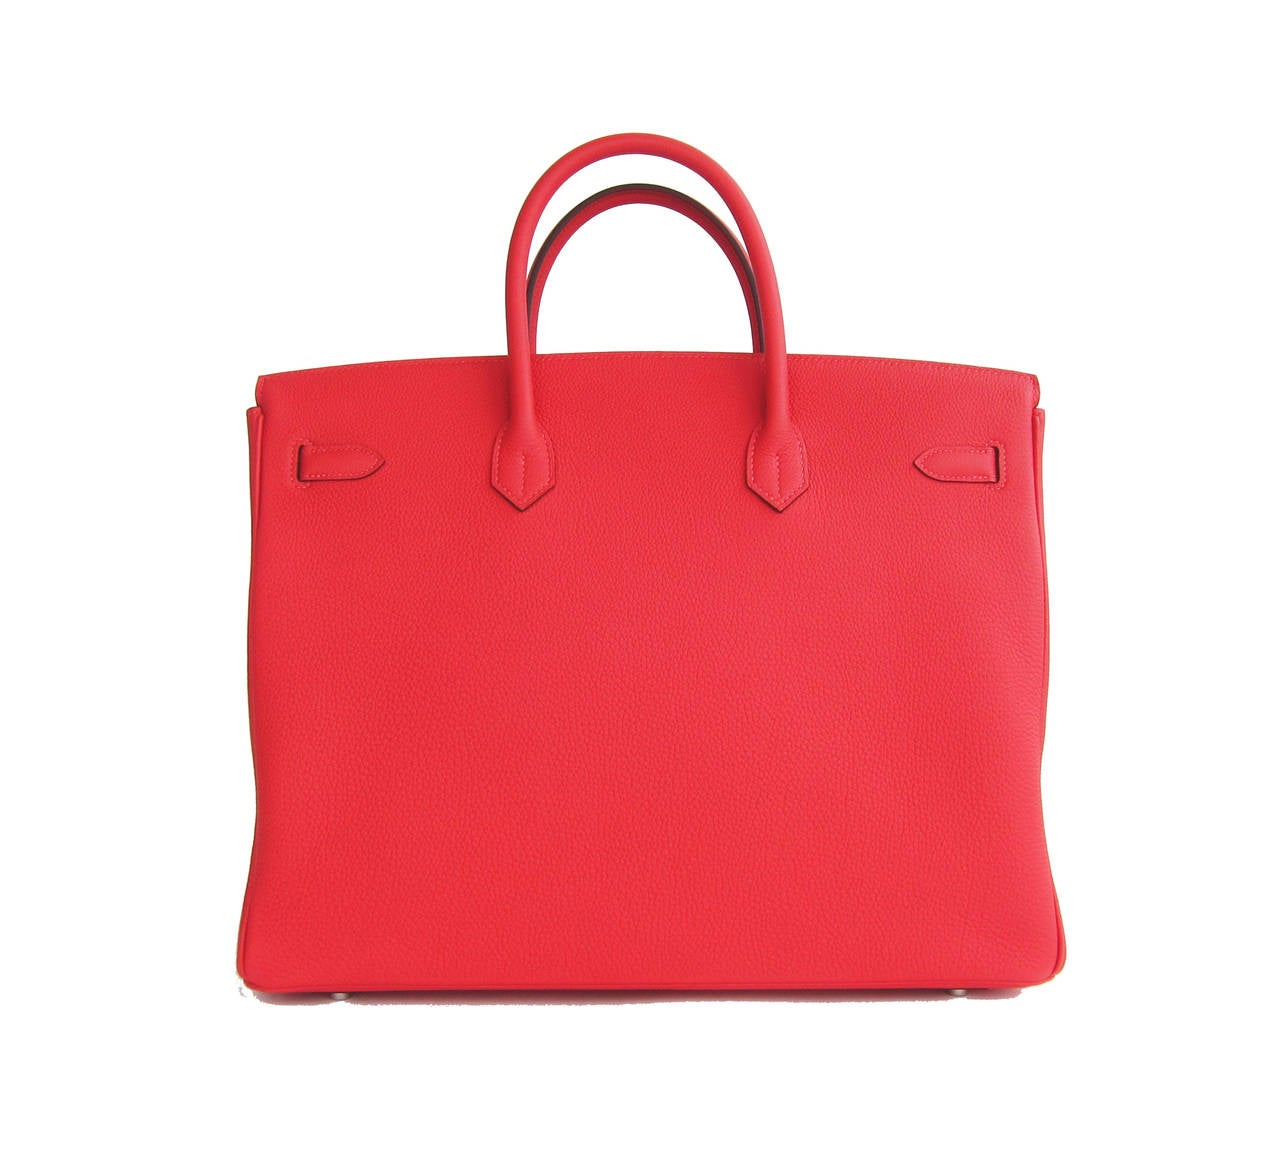 Hermes Rouge Pivoine 40cm Togo Birkin Bag Palladium Luscious In New never worn Condition For Sale In New York, NY